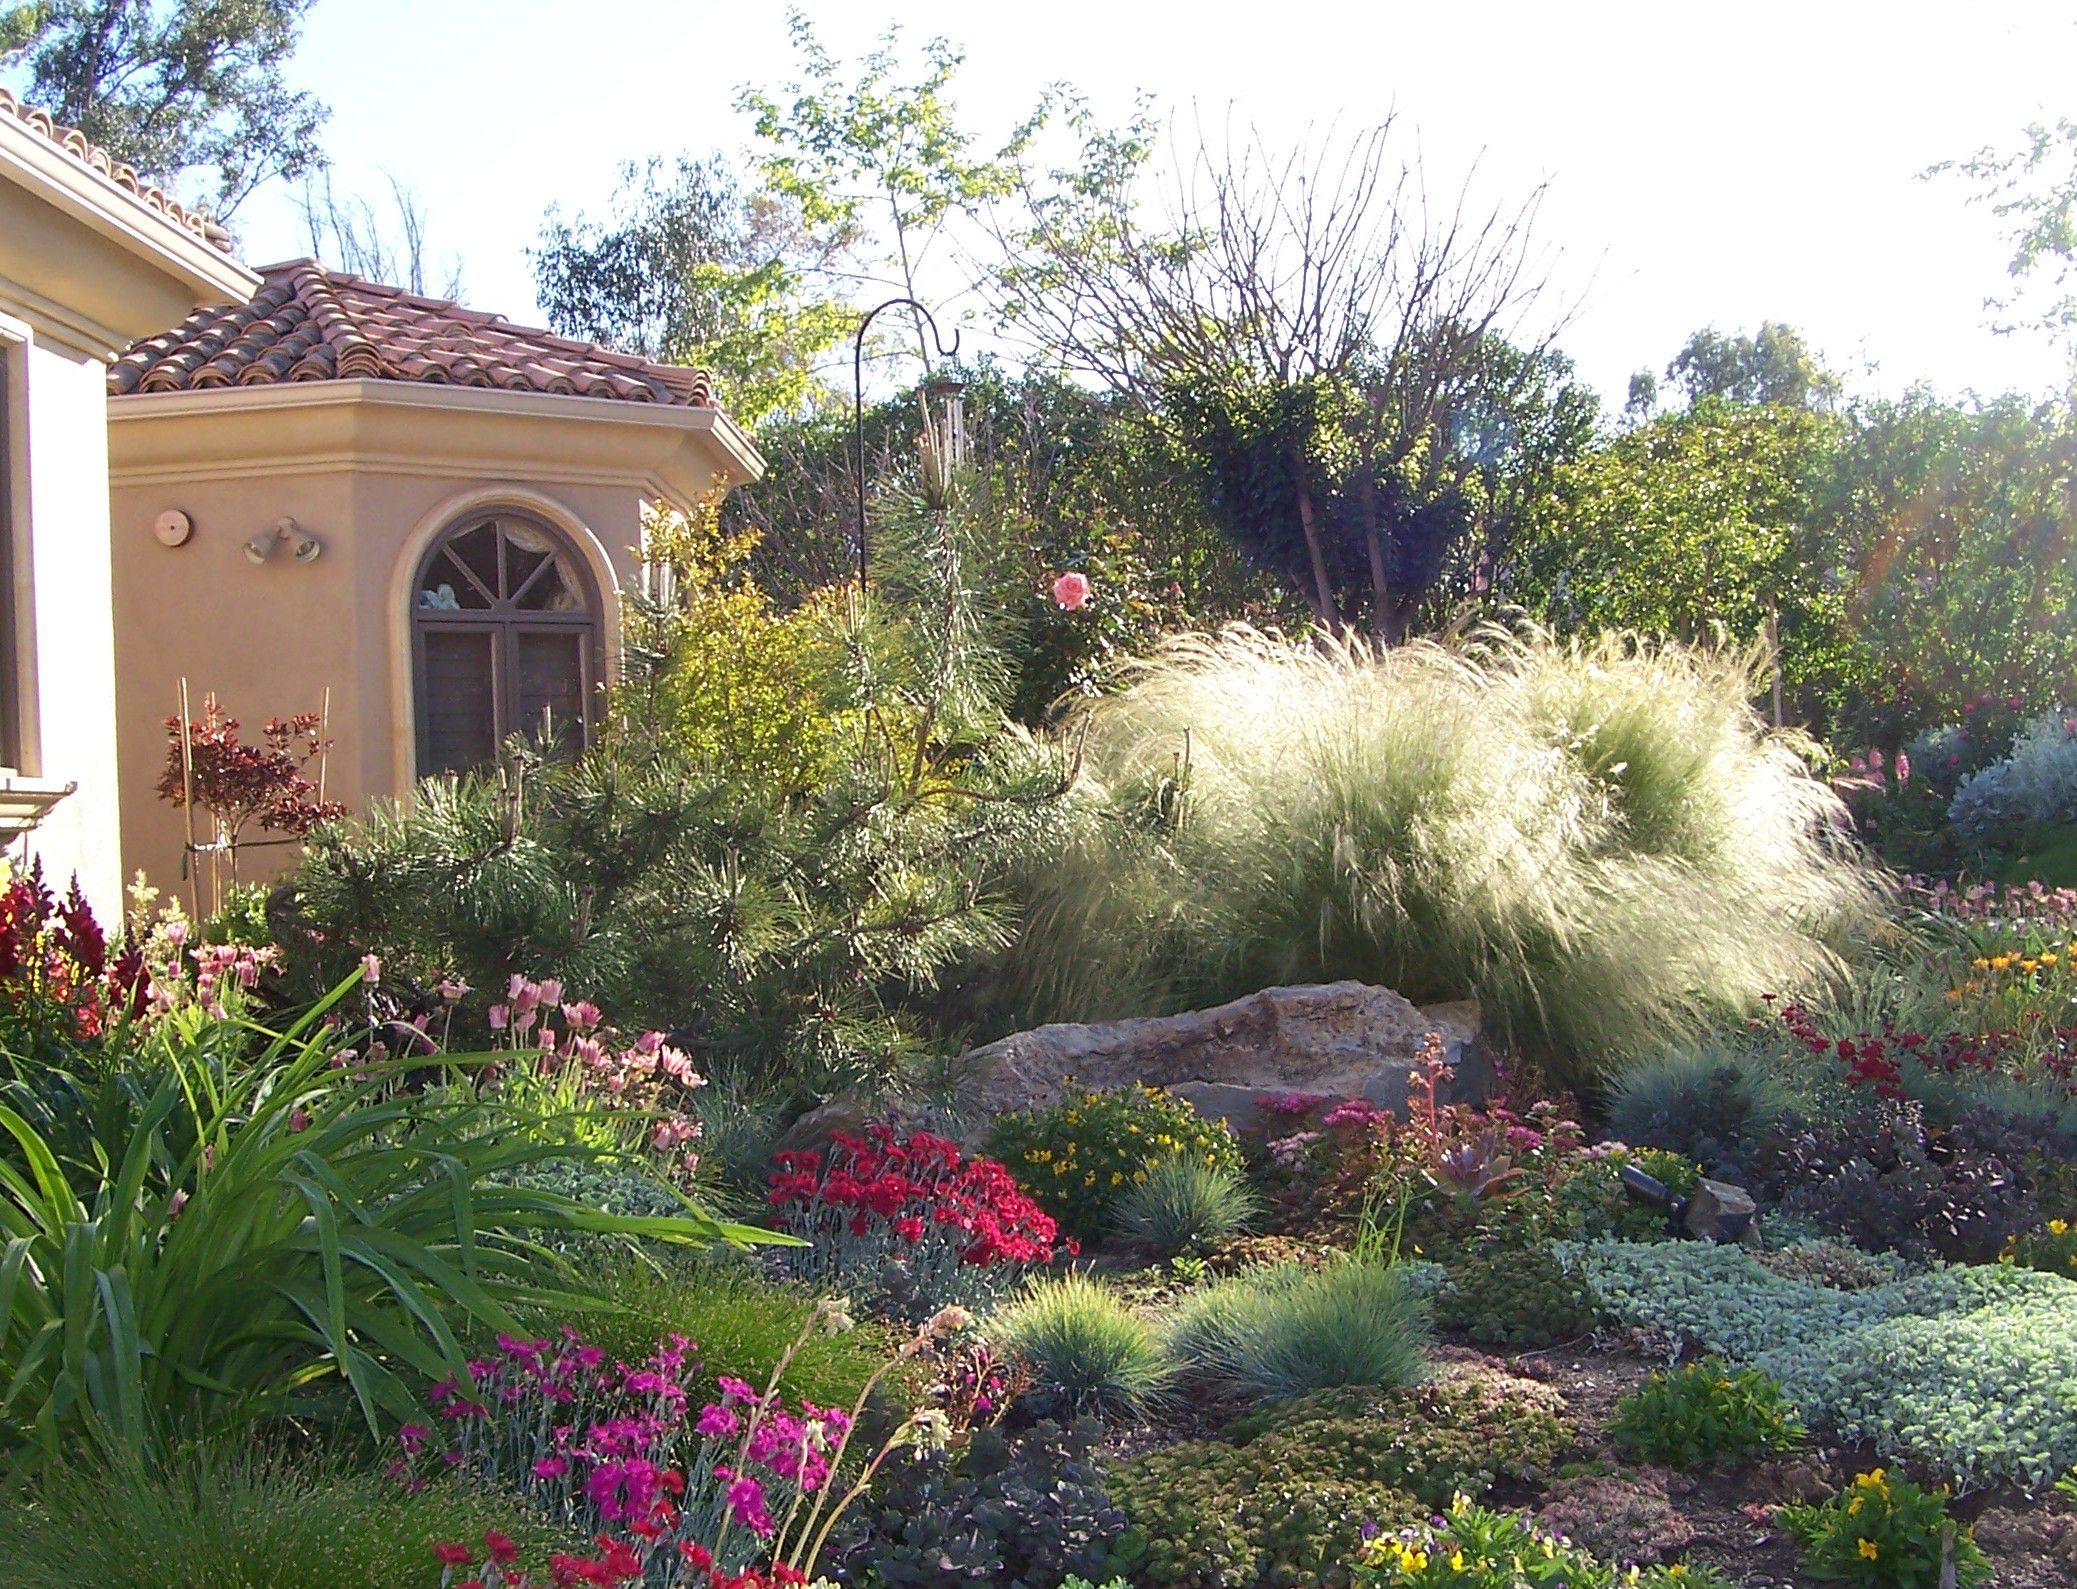 Merveilleux Fascinating Drought Tolerant Landscaping With Colorful Flowerss And Stones  Near Classic Garden Lamp